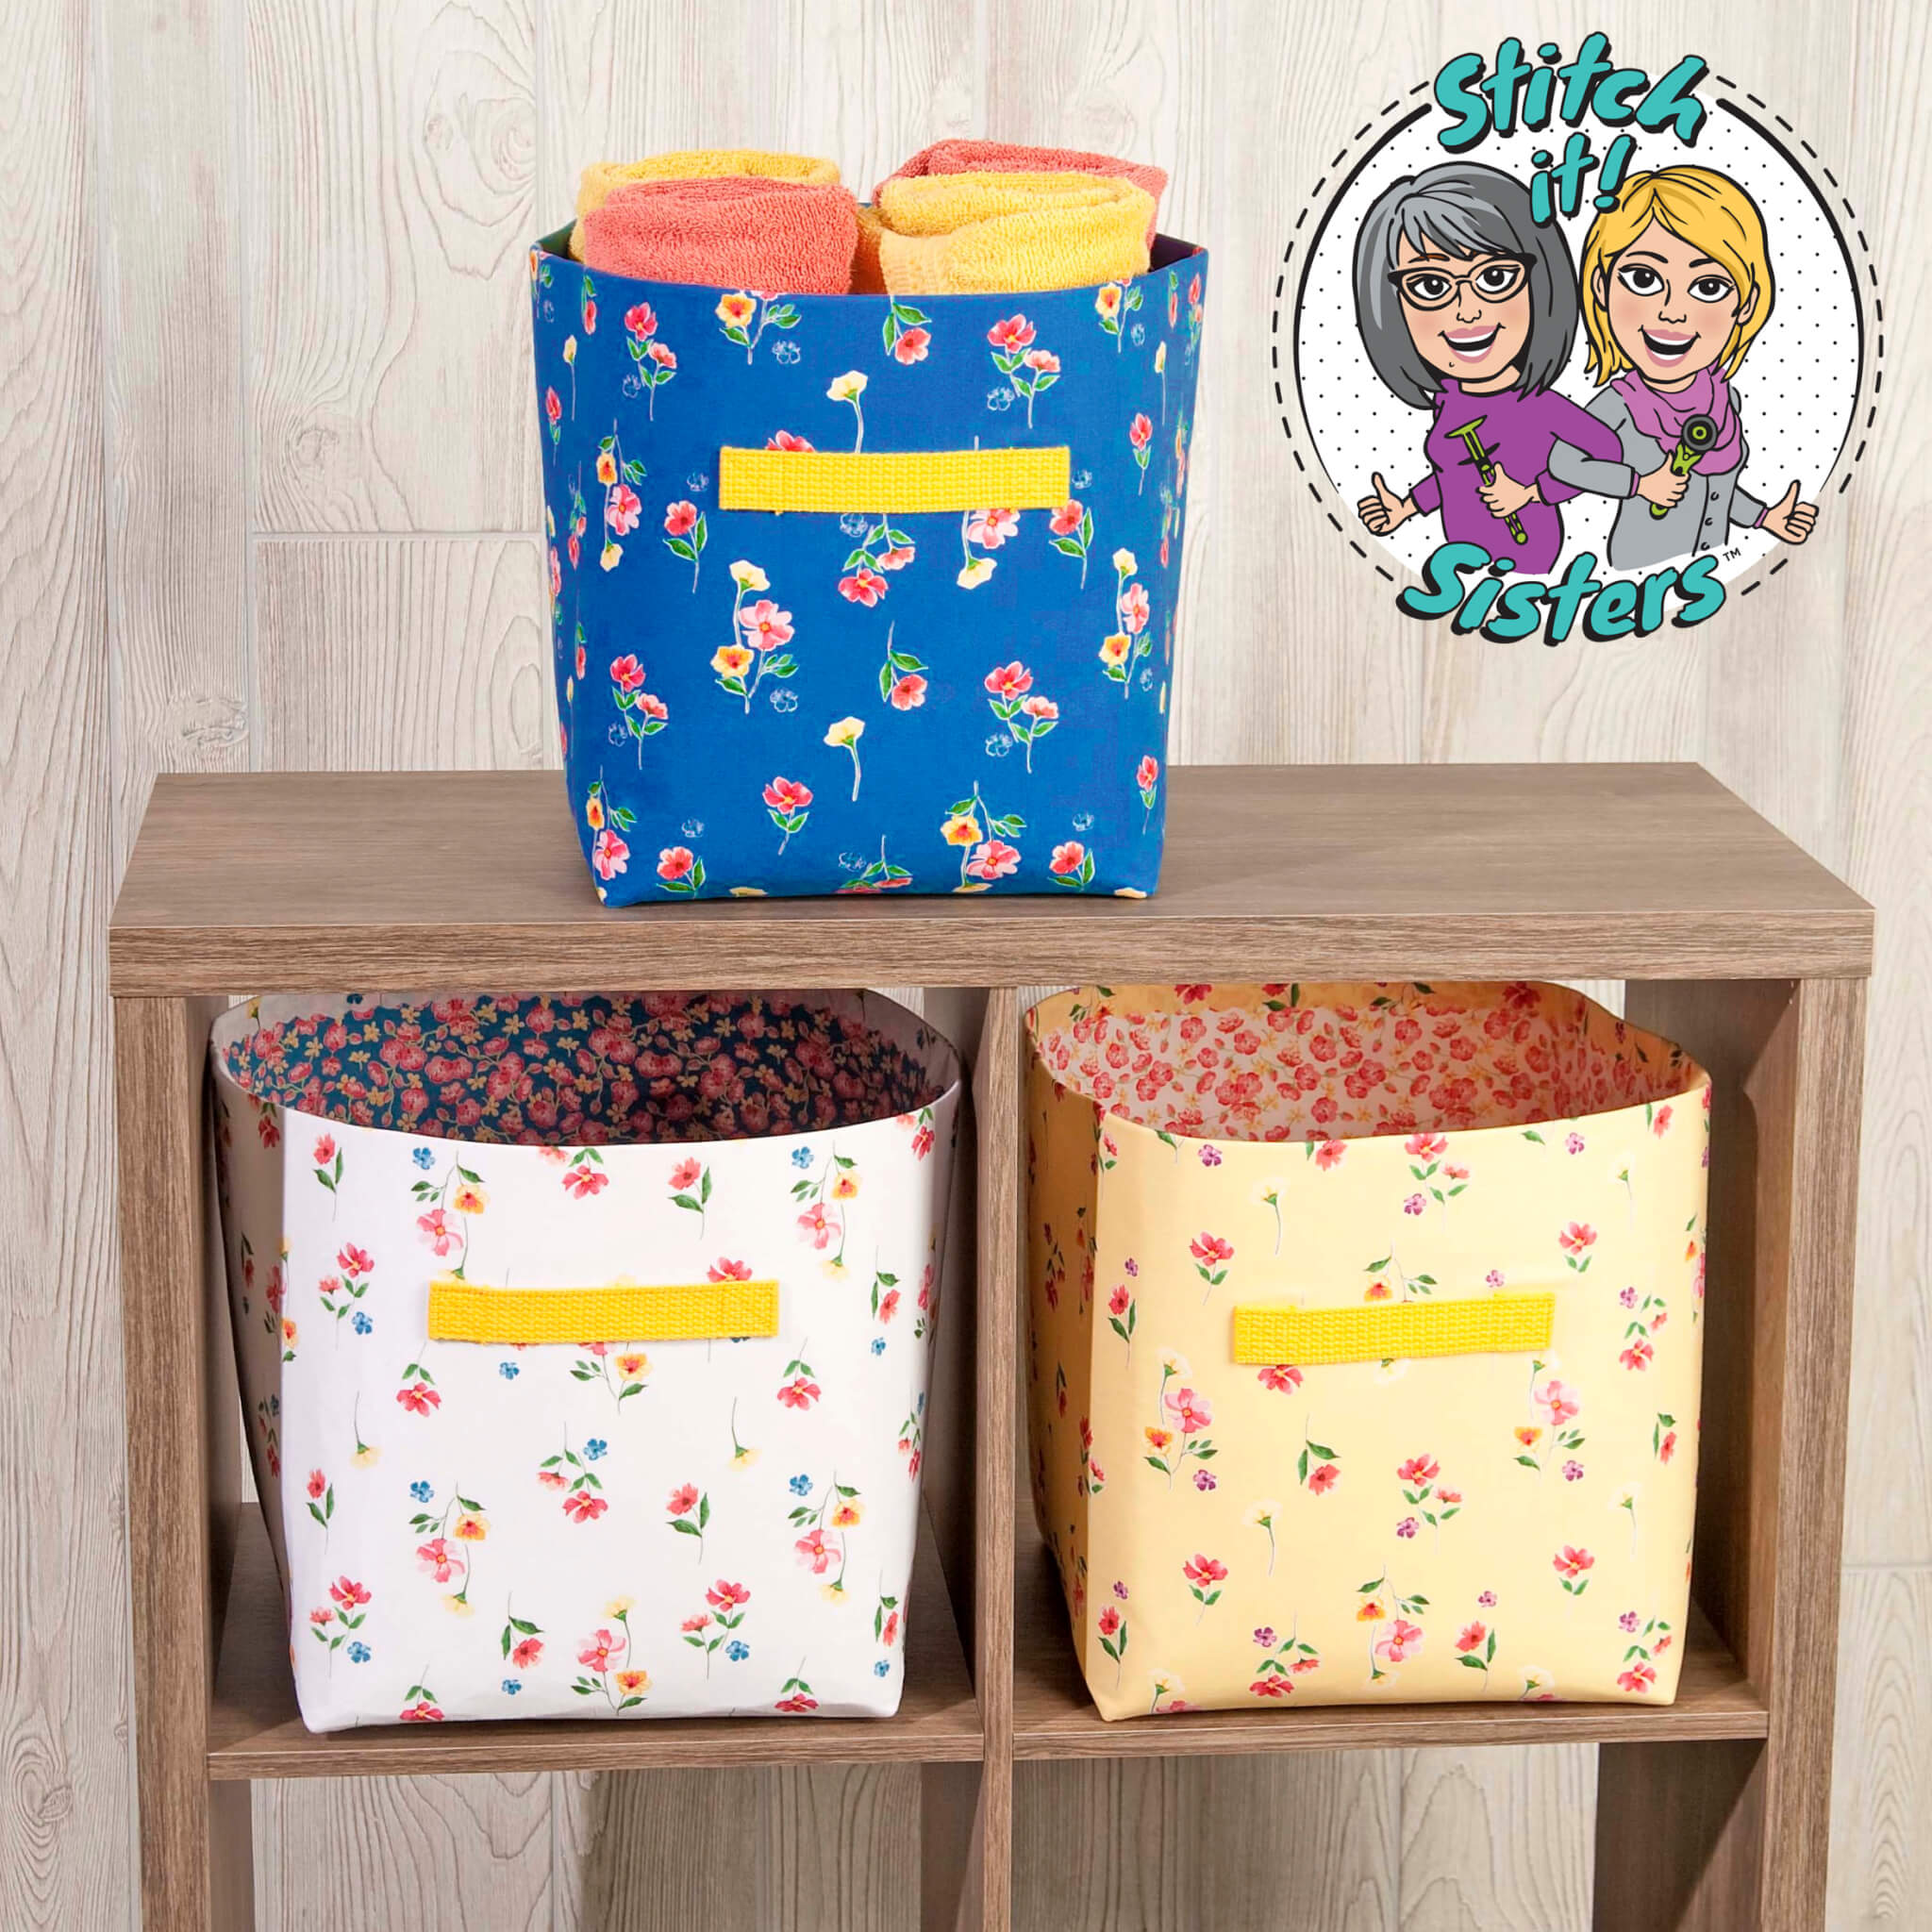 Stitch it! Sisters Sew Organized Fabric Bins Sewing Video Program 203 at The Nancy Zieman Productions Blog